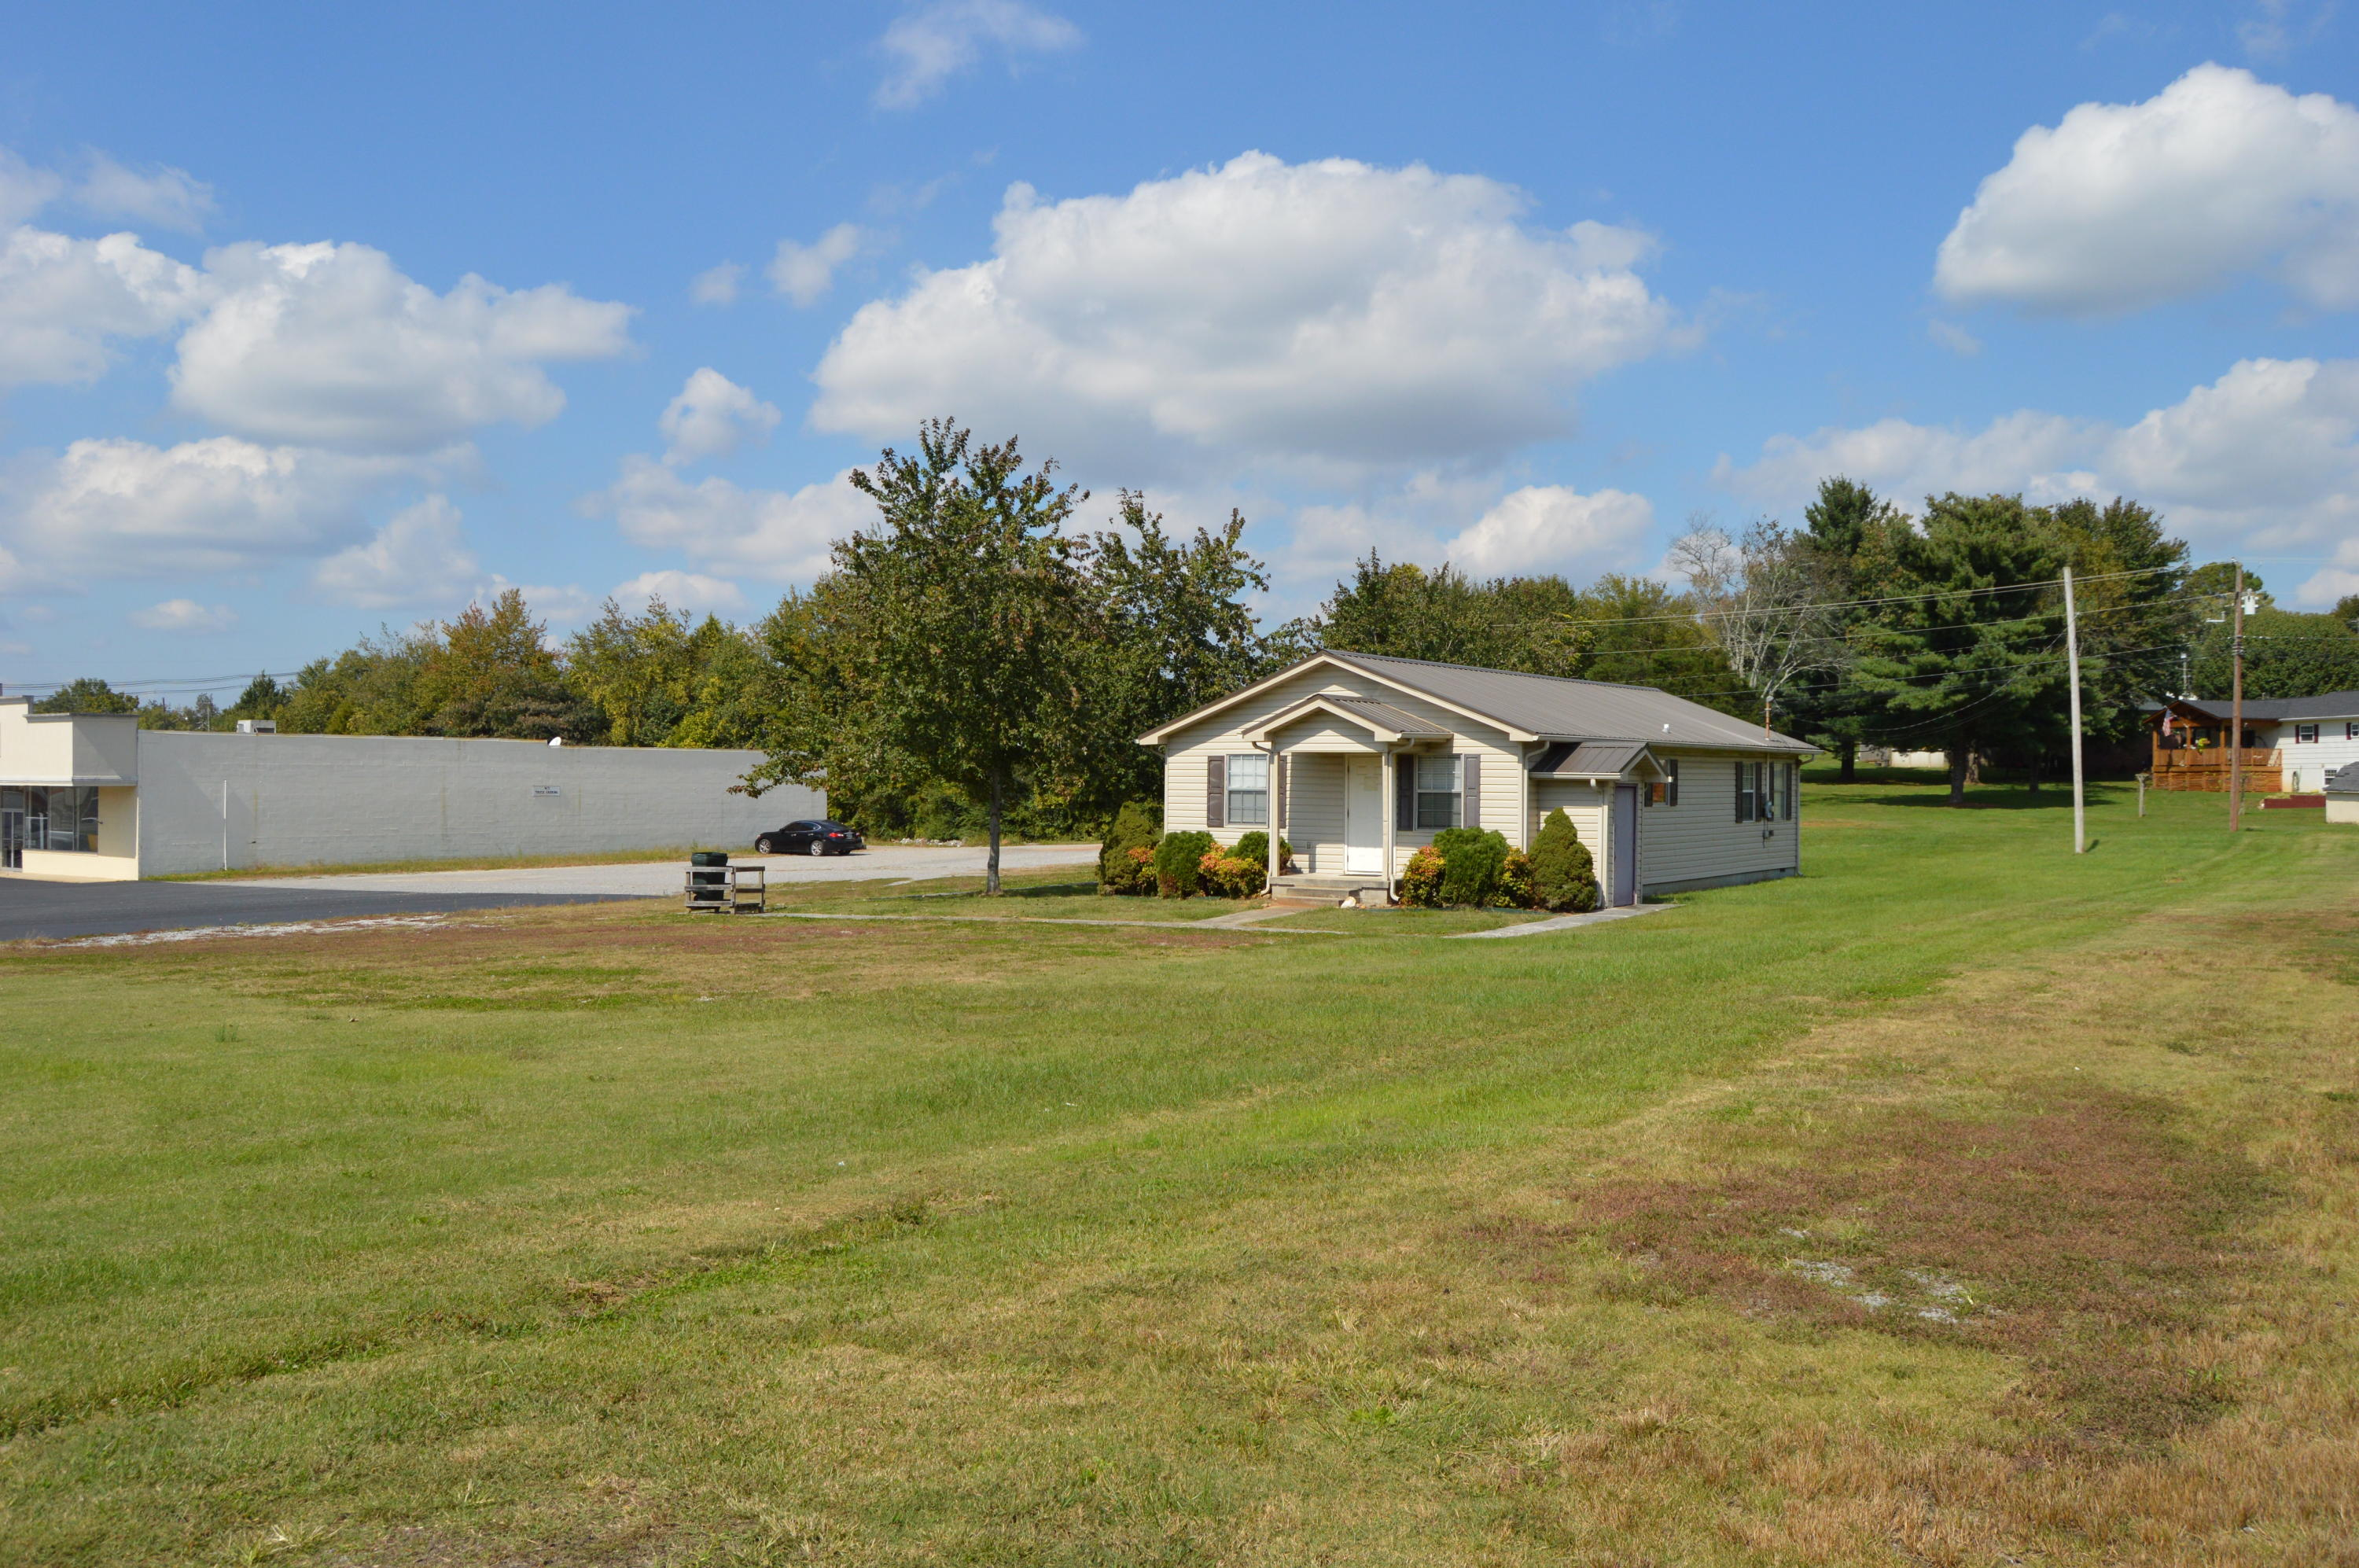 607 Sweetwater Vonore Rd, Sweetwater, Tennessee 37874, ,Commercial,For Sale,Sweetwater Vonore,1131989